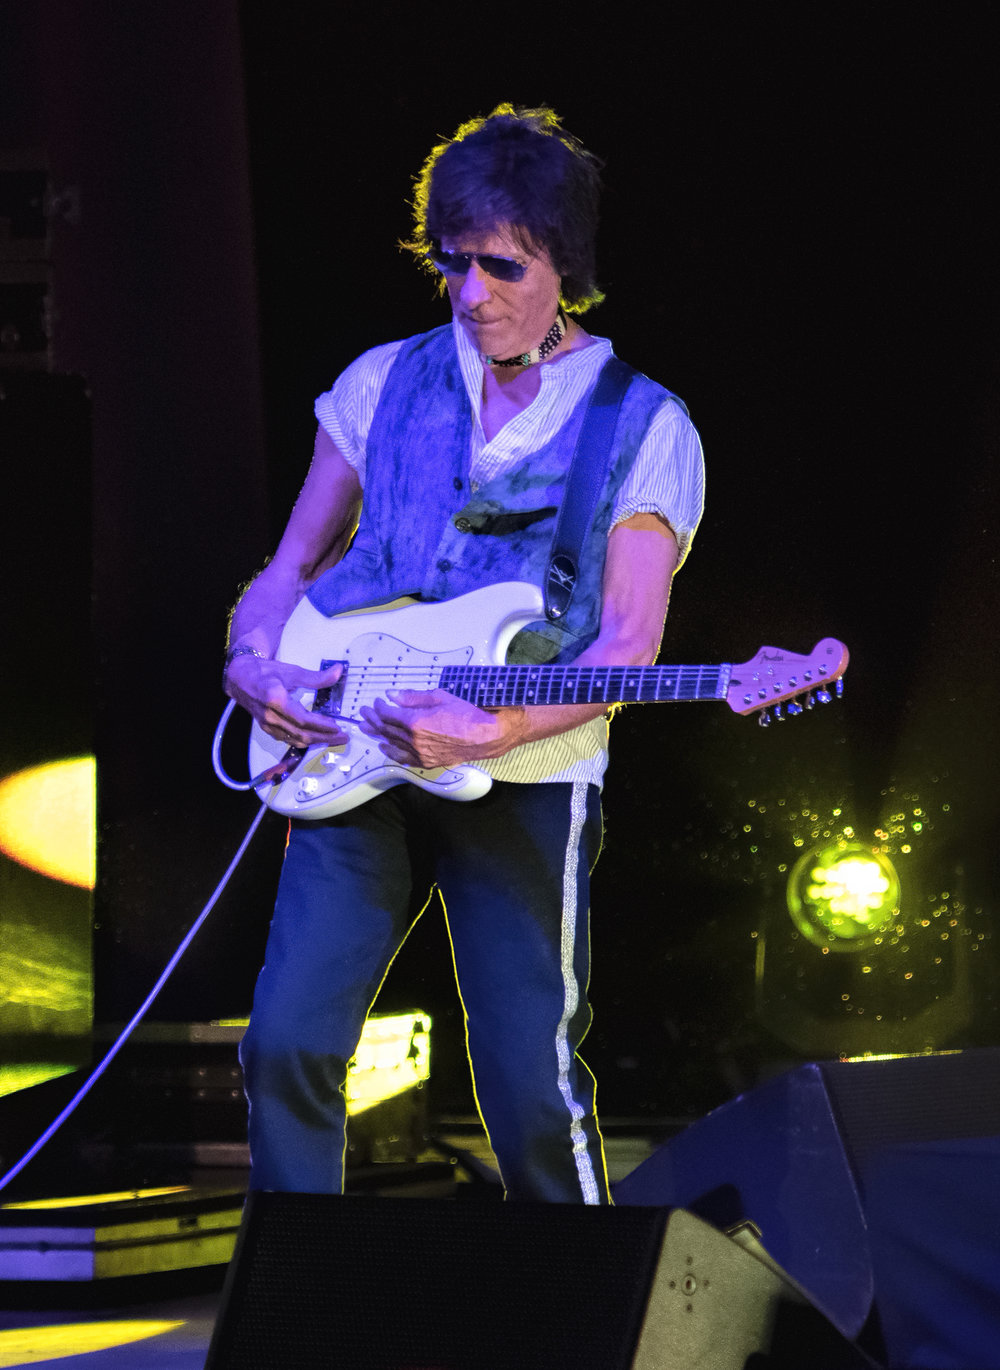 Jeff Beck July 20, 2018 Five Points Amphitheater Irvine, California